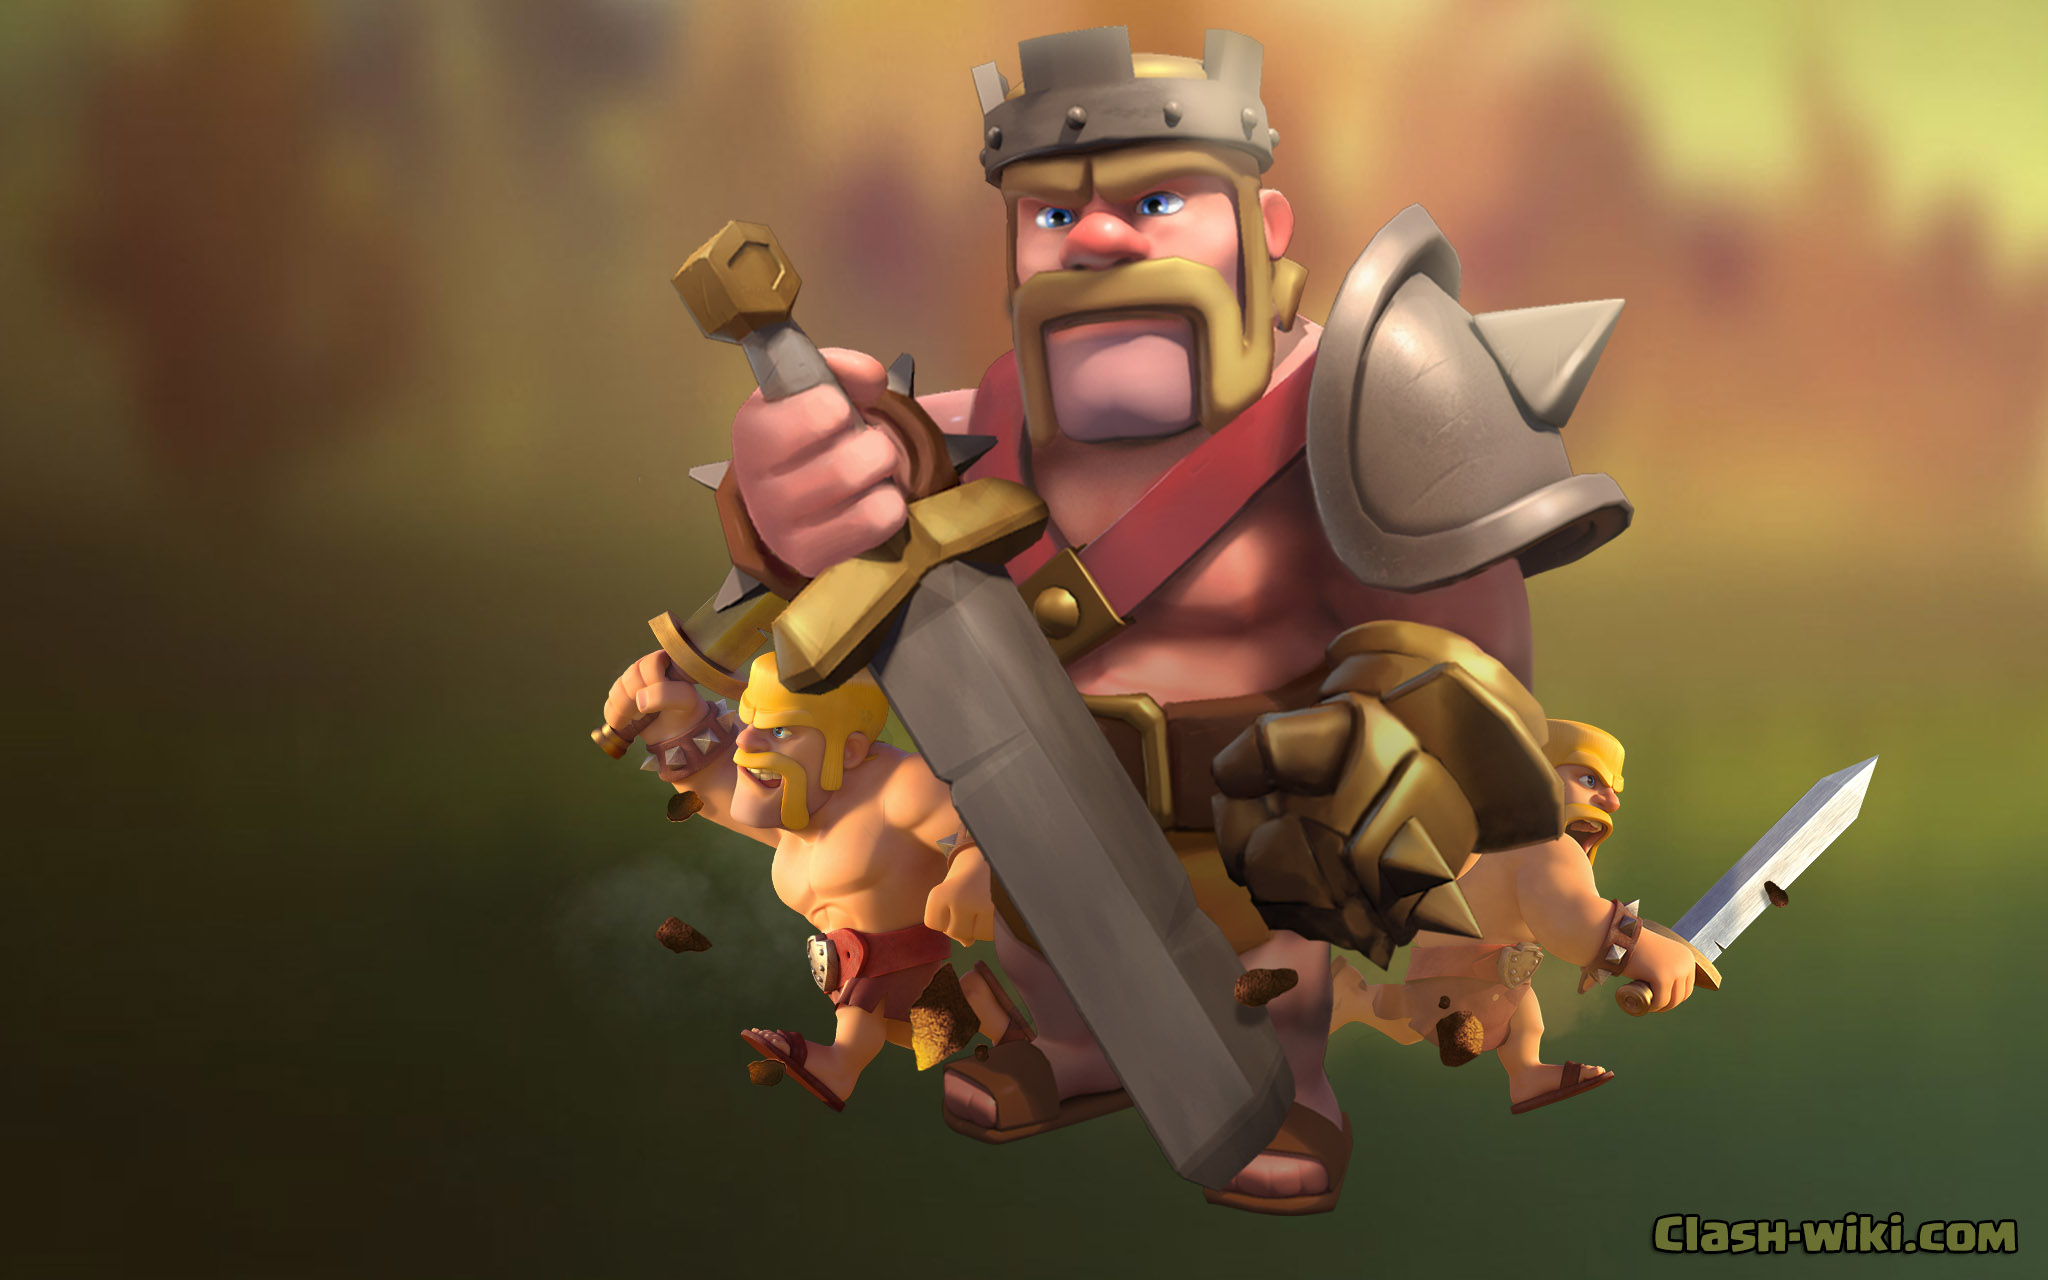 Barbarian Clash Of Clans Hd Hd Games 4k Wallpapers: Archer Queen Clash Of Clans Hd Games 4k Wallpapers Images